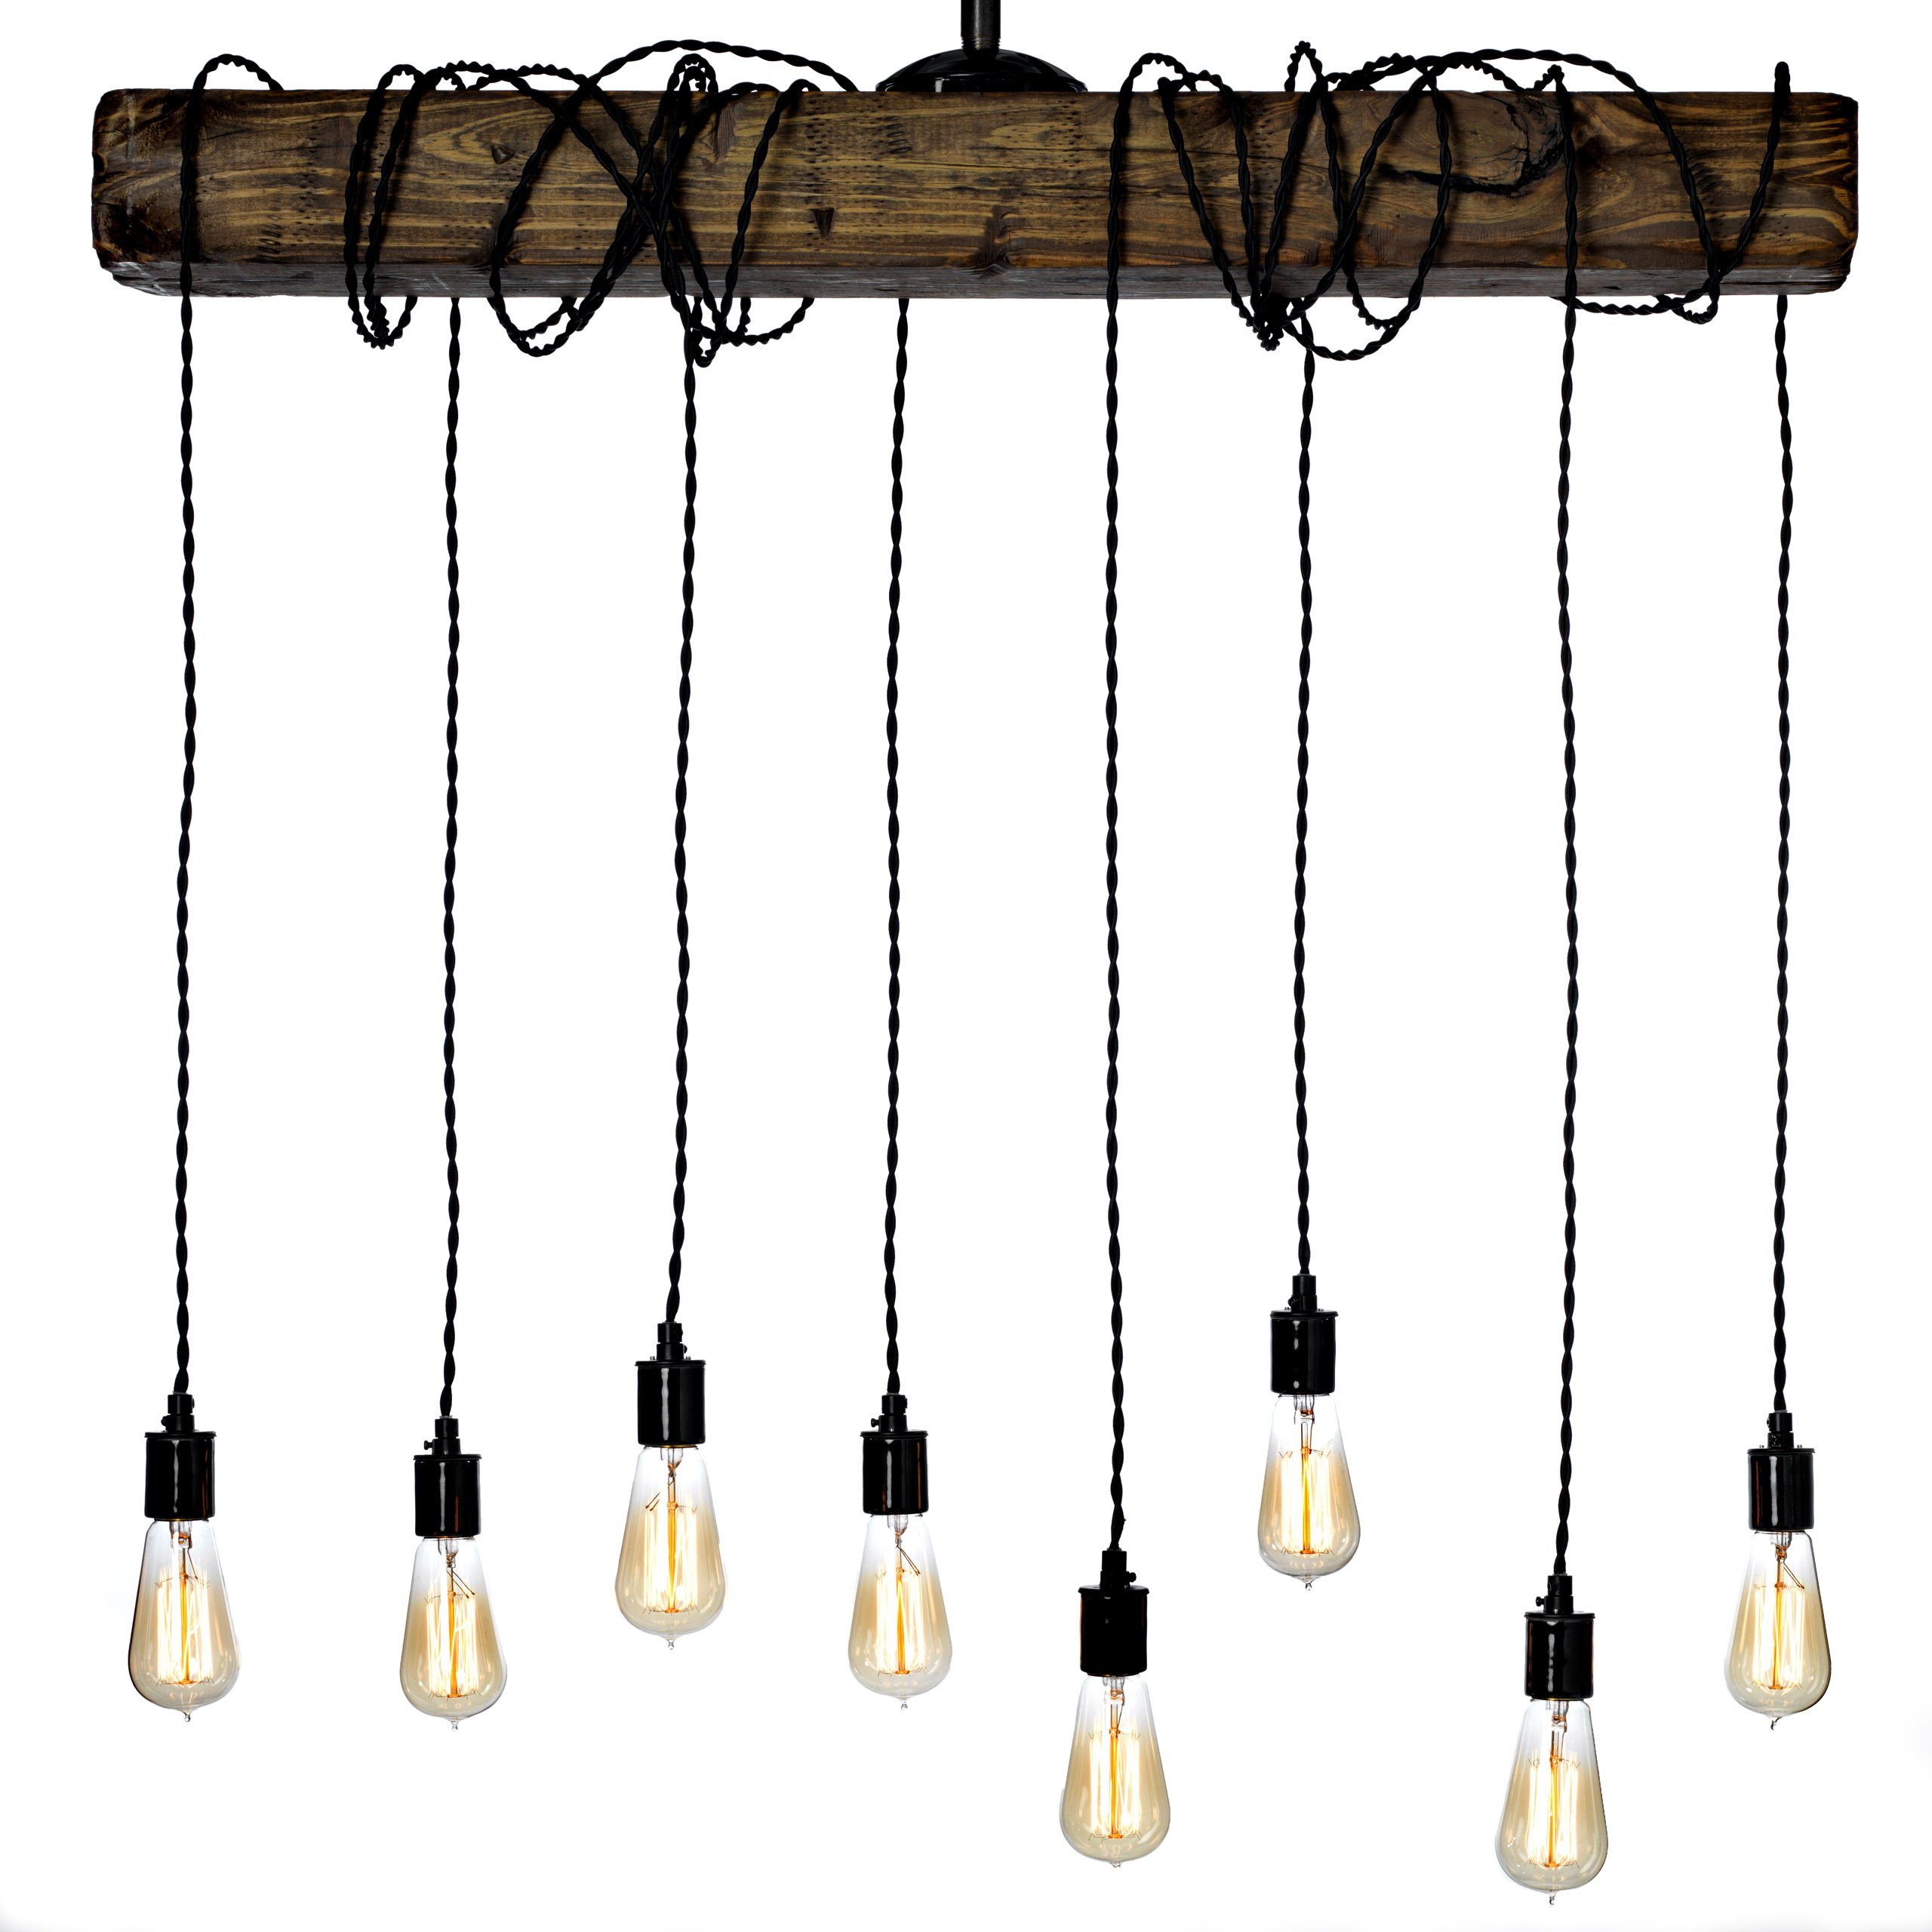 Buy Farmhouse Style Light Fixture Wrapped Wood Beam Antique Decor Chandelier Pendant Lighting Vintage Kitchen Bar Industrial Island Billiard And Edison Bulb Decor Natural Reclaimed Style Wooden In Cheap Price